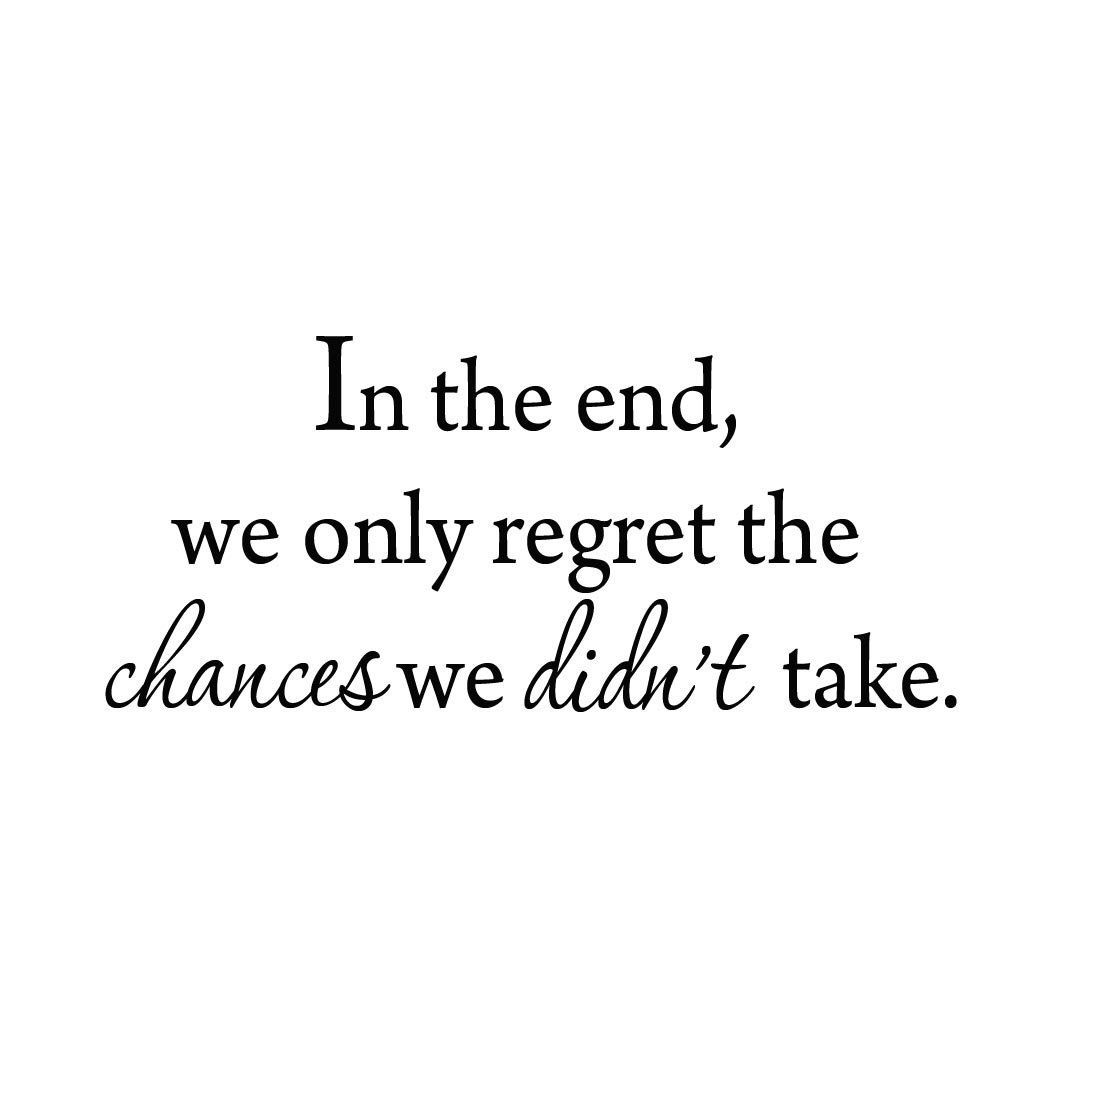 VWAQ In The End, We Only Regret The Chances We Didn't Take Wall Decal VWAQ 1579